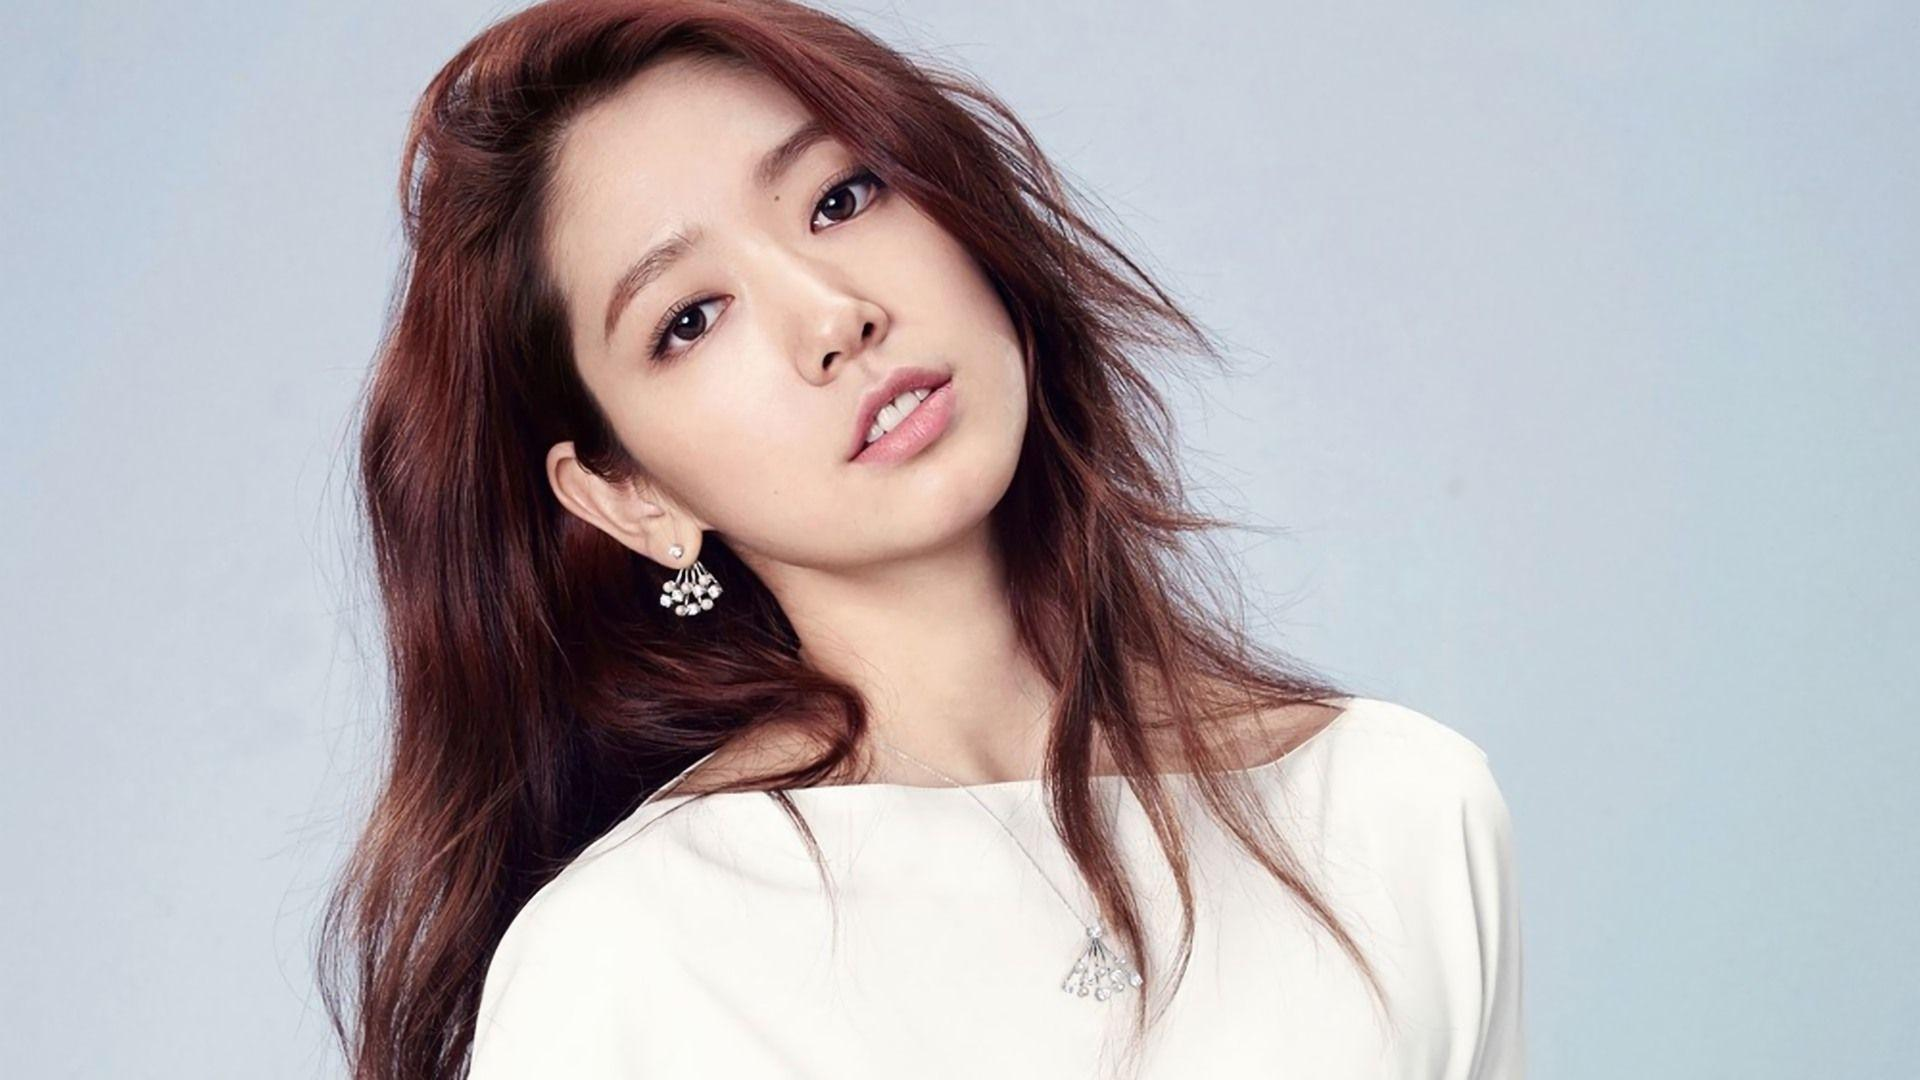 Park Shin Hye Wallpapers Hd 2019 For Android - Apk Download-4705